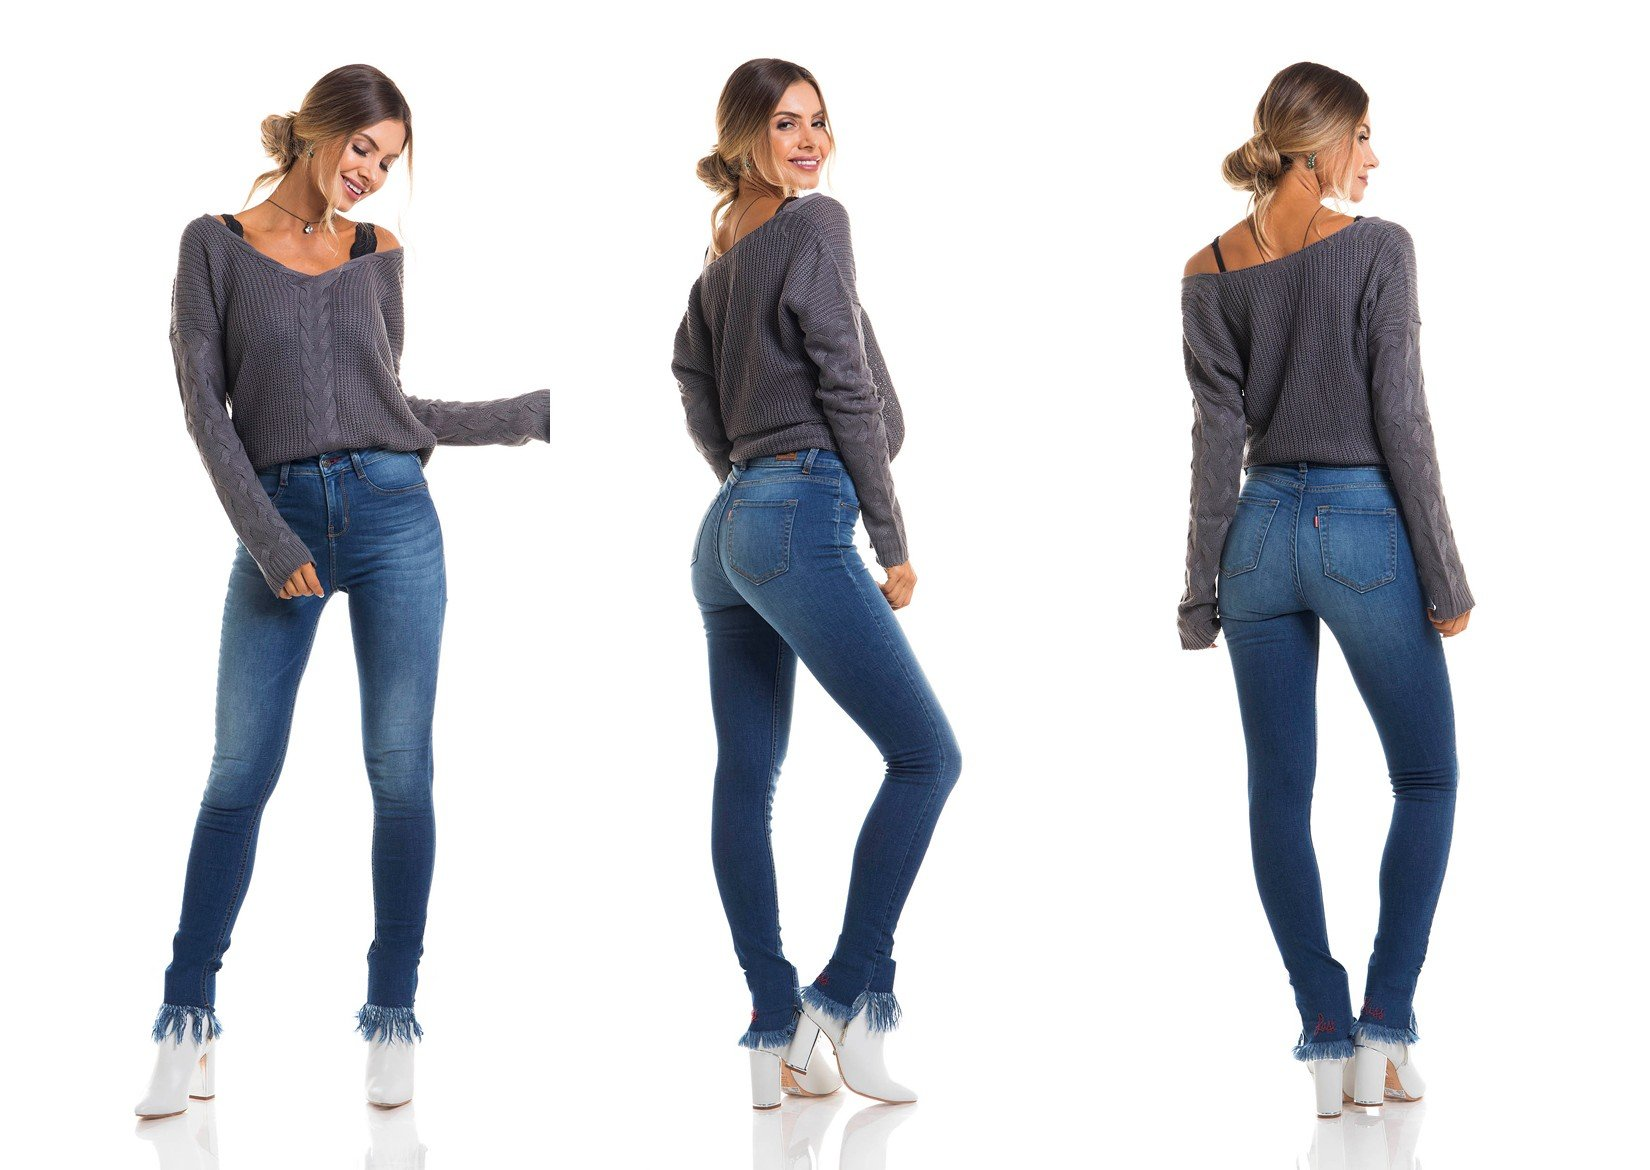 dz2659 calca skinny media tripla